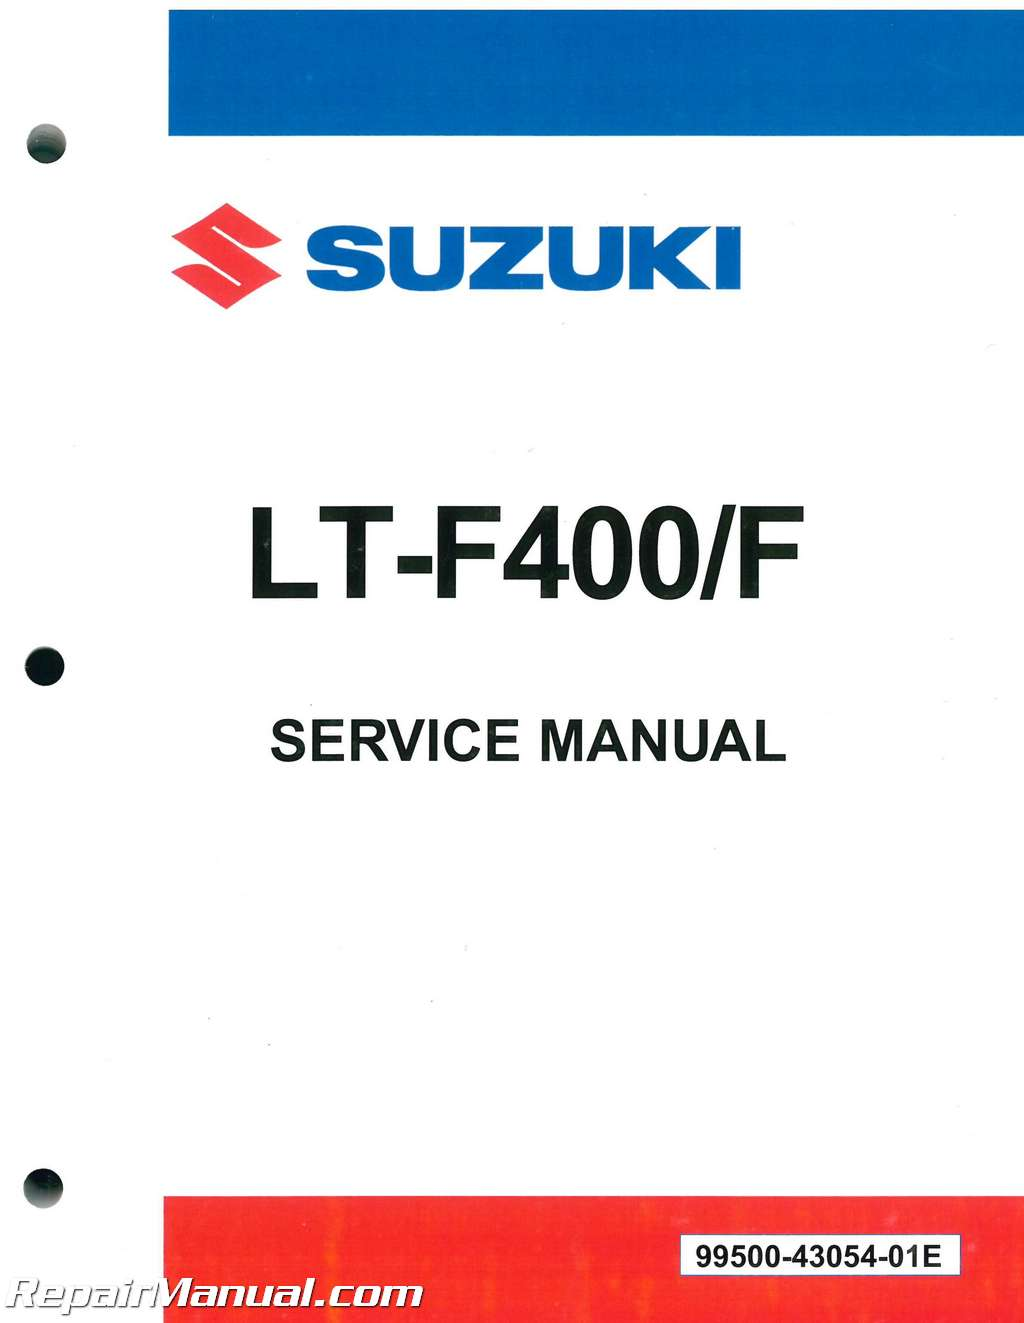 Suzuki Eiger 400 Manual LT F400 400F ATV 2002 2007 Service Manual_001 49 [ sportsman rv manual wiring diagram for 1987 ] suzuki eiger suzuki eiger wiring diagram at gsmx.co